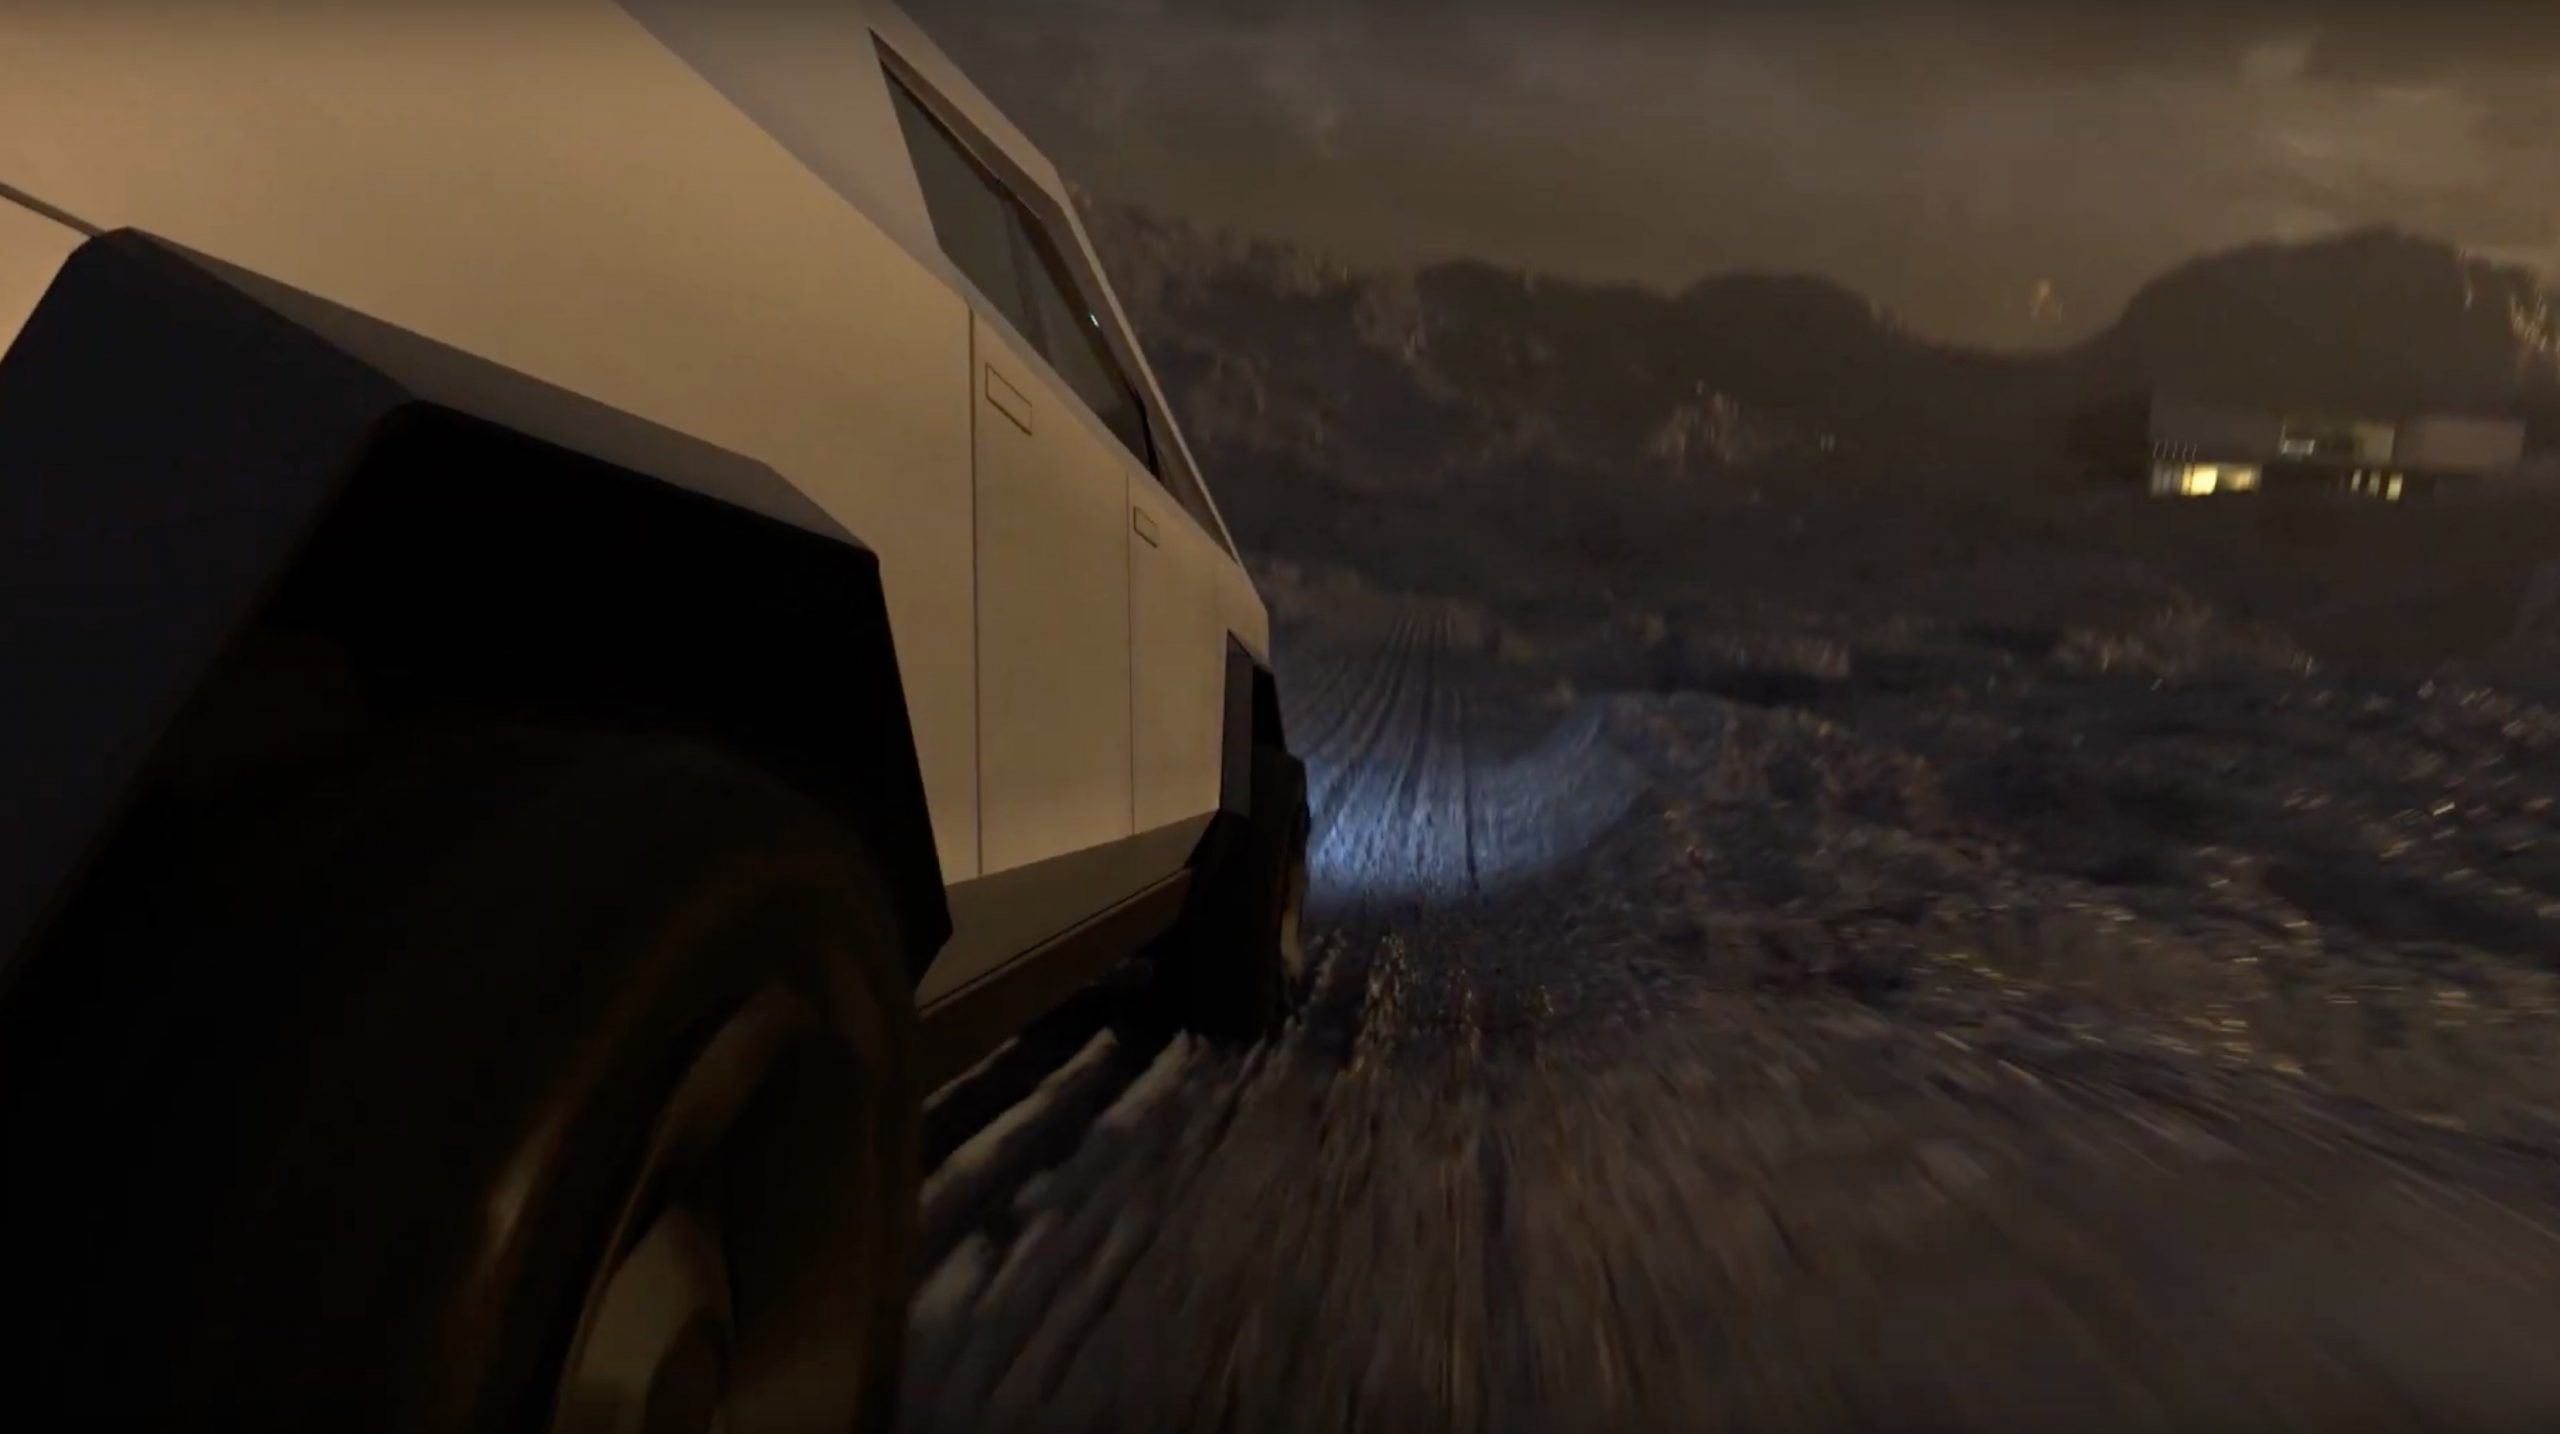 Tesla Cybertruck traverses dystopian wasteland to house of the future (Credit: archlab.de)